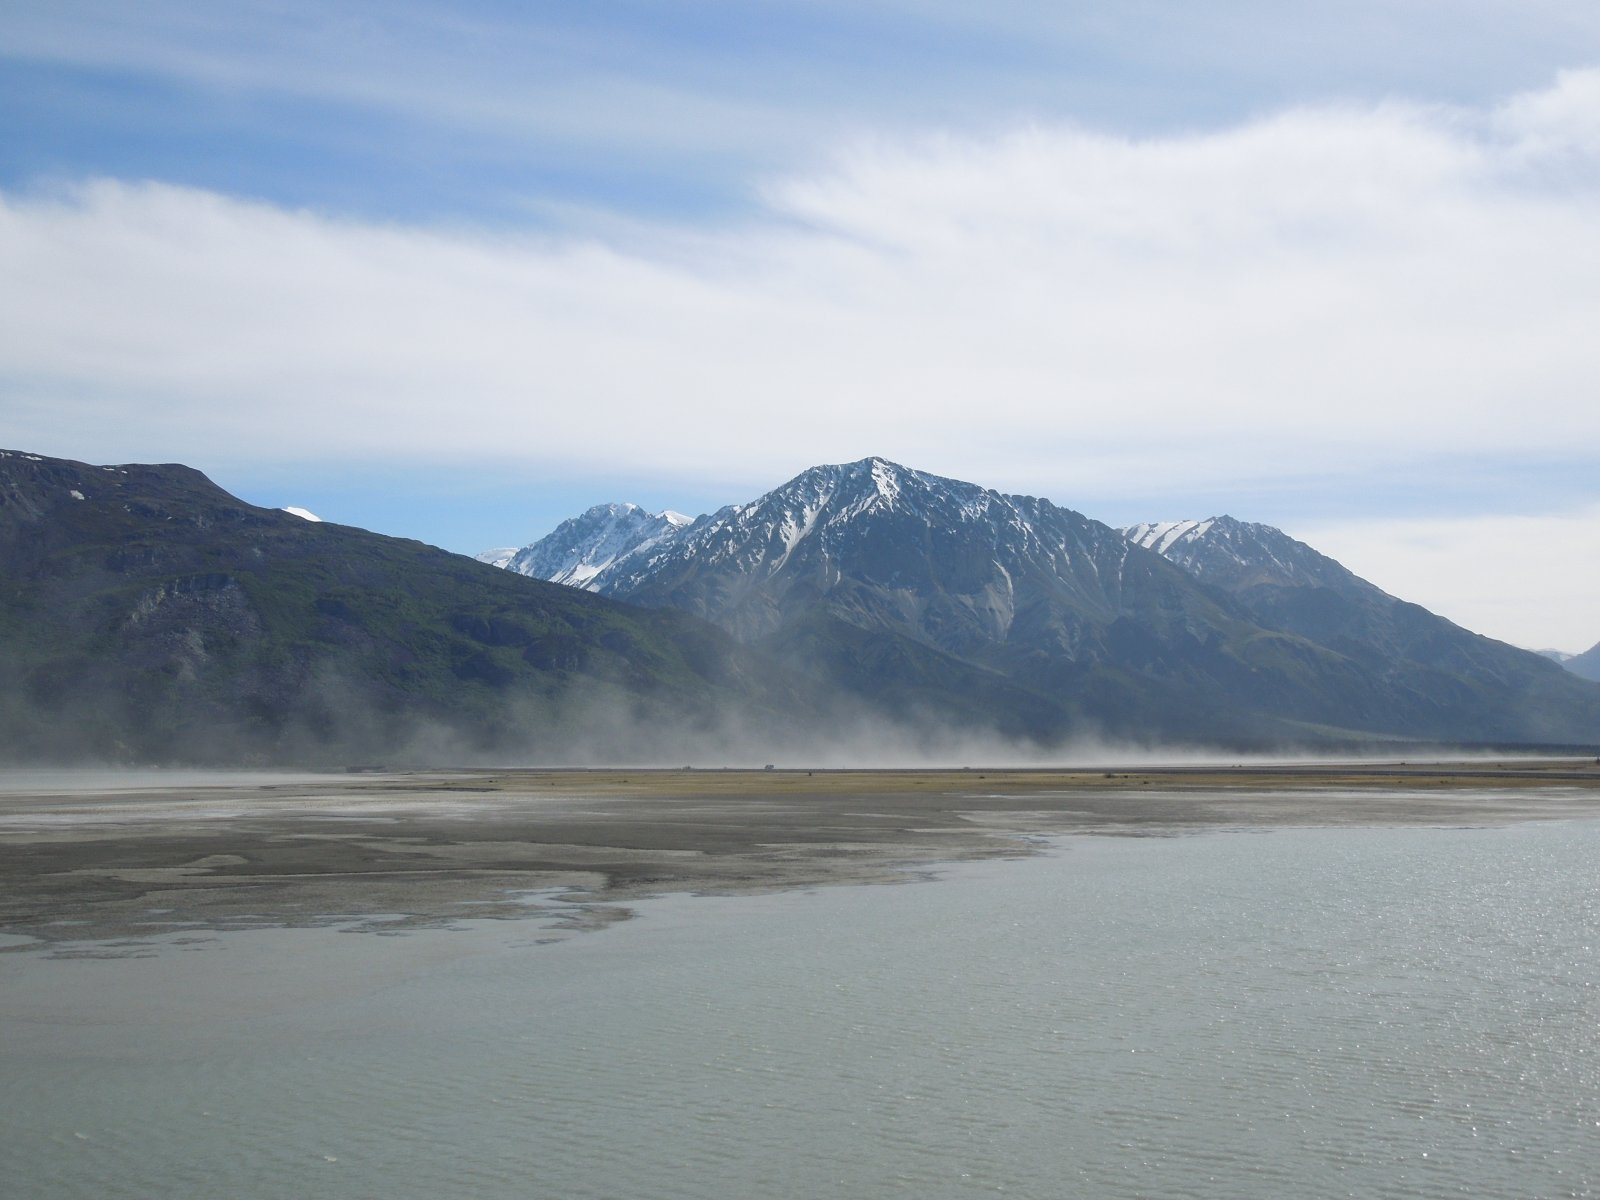 Click image for larger version  Name:Haines, AK to Destruction Bay, Yukon 210.jpg Views:73 Size:186.3 KB ID:214339